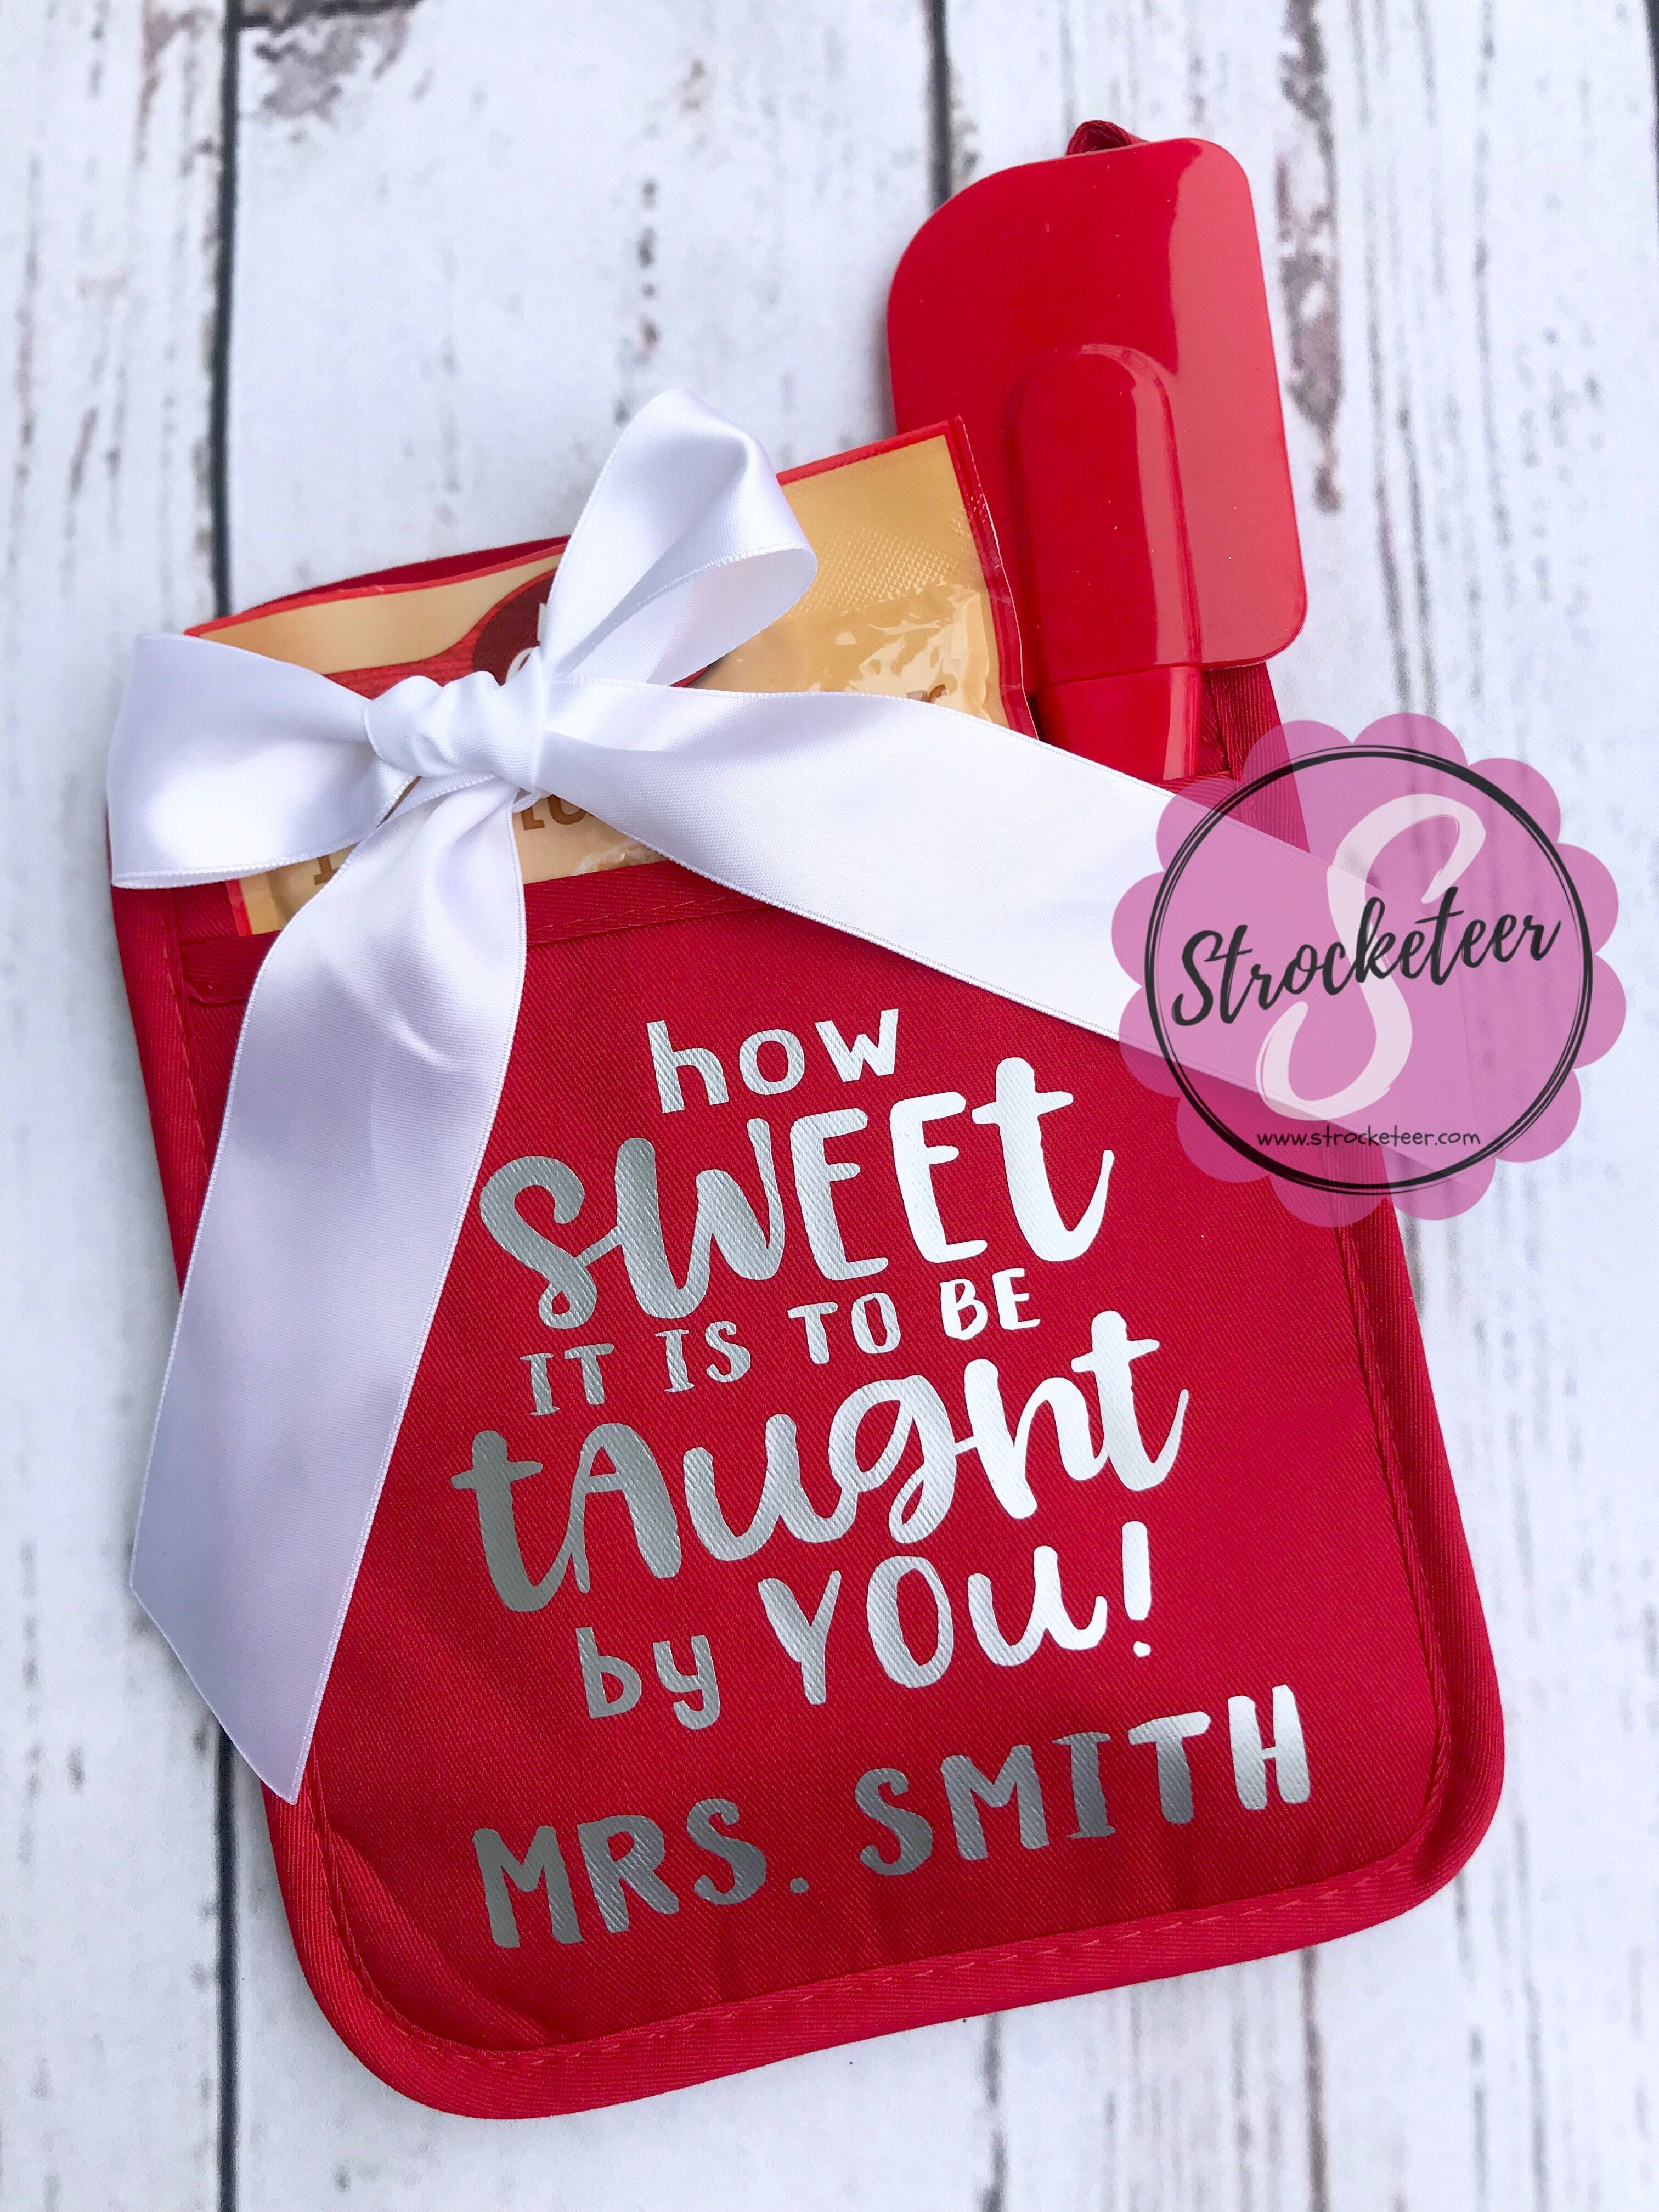 How Sweet It Is To Be Taught By You Potholder Gift Set